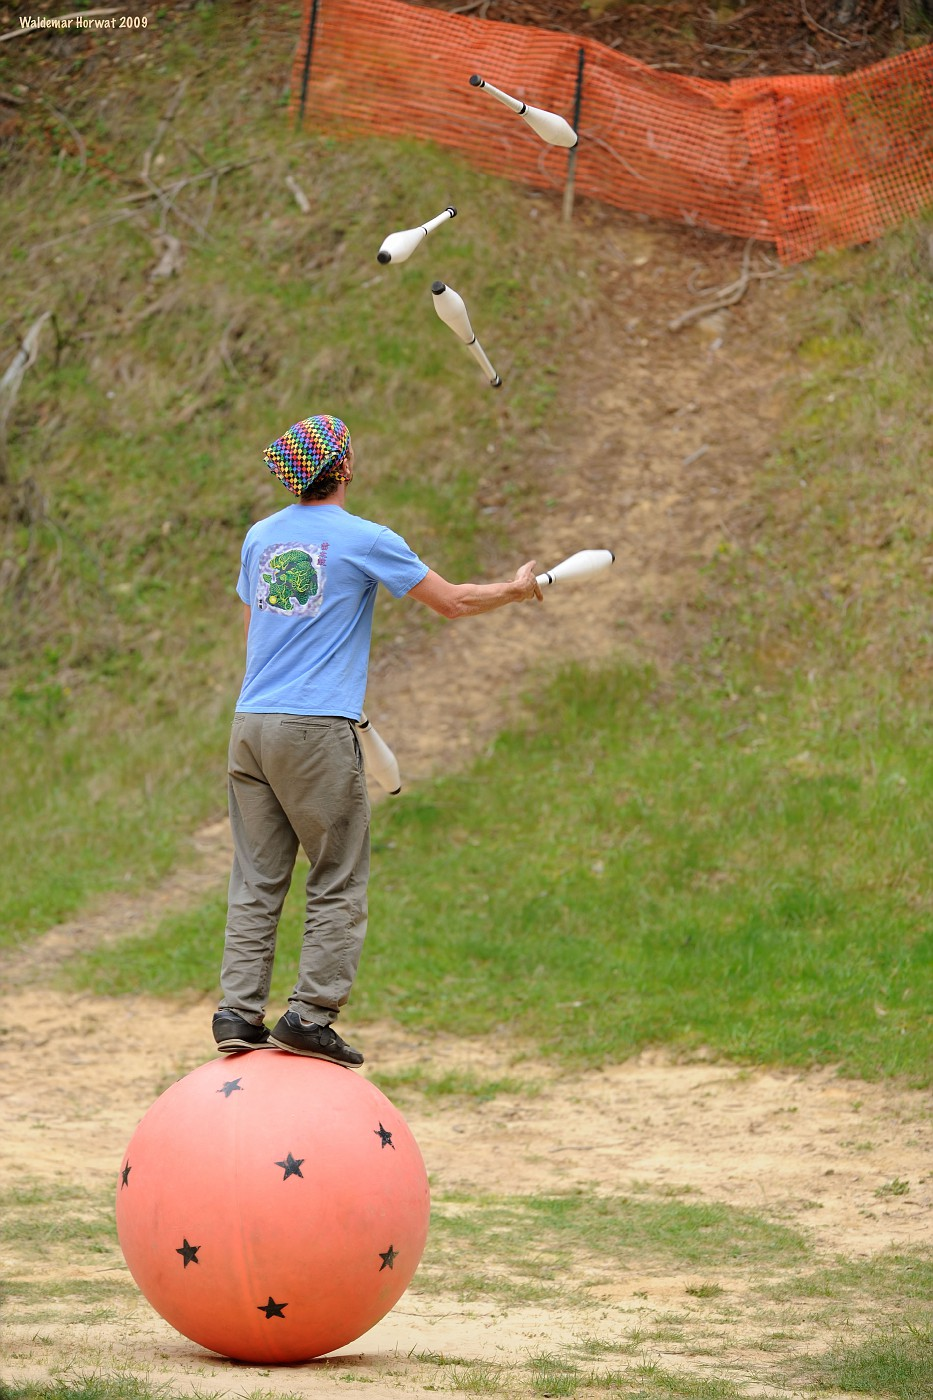 Juggling on the Ball